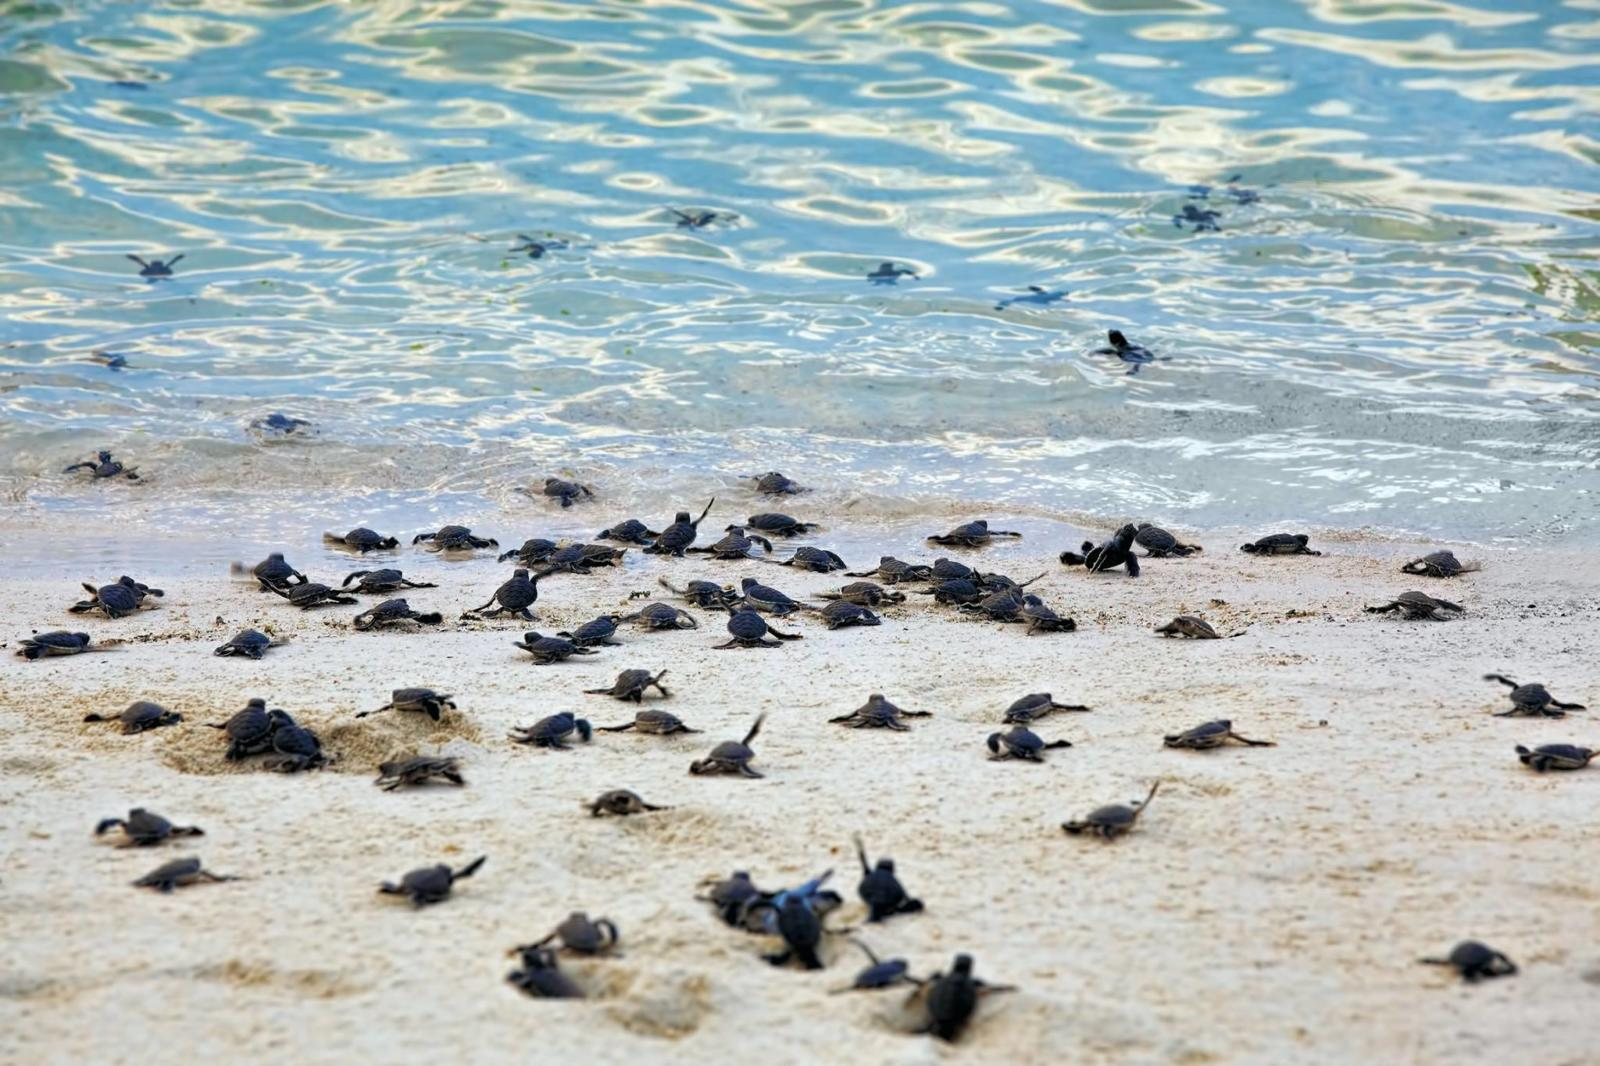 Baby sea turtles getting in the Gulf in Siesta Key